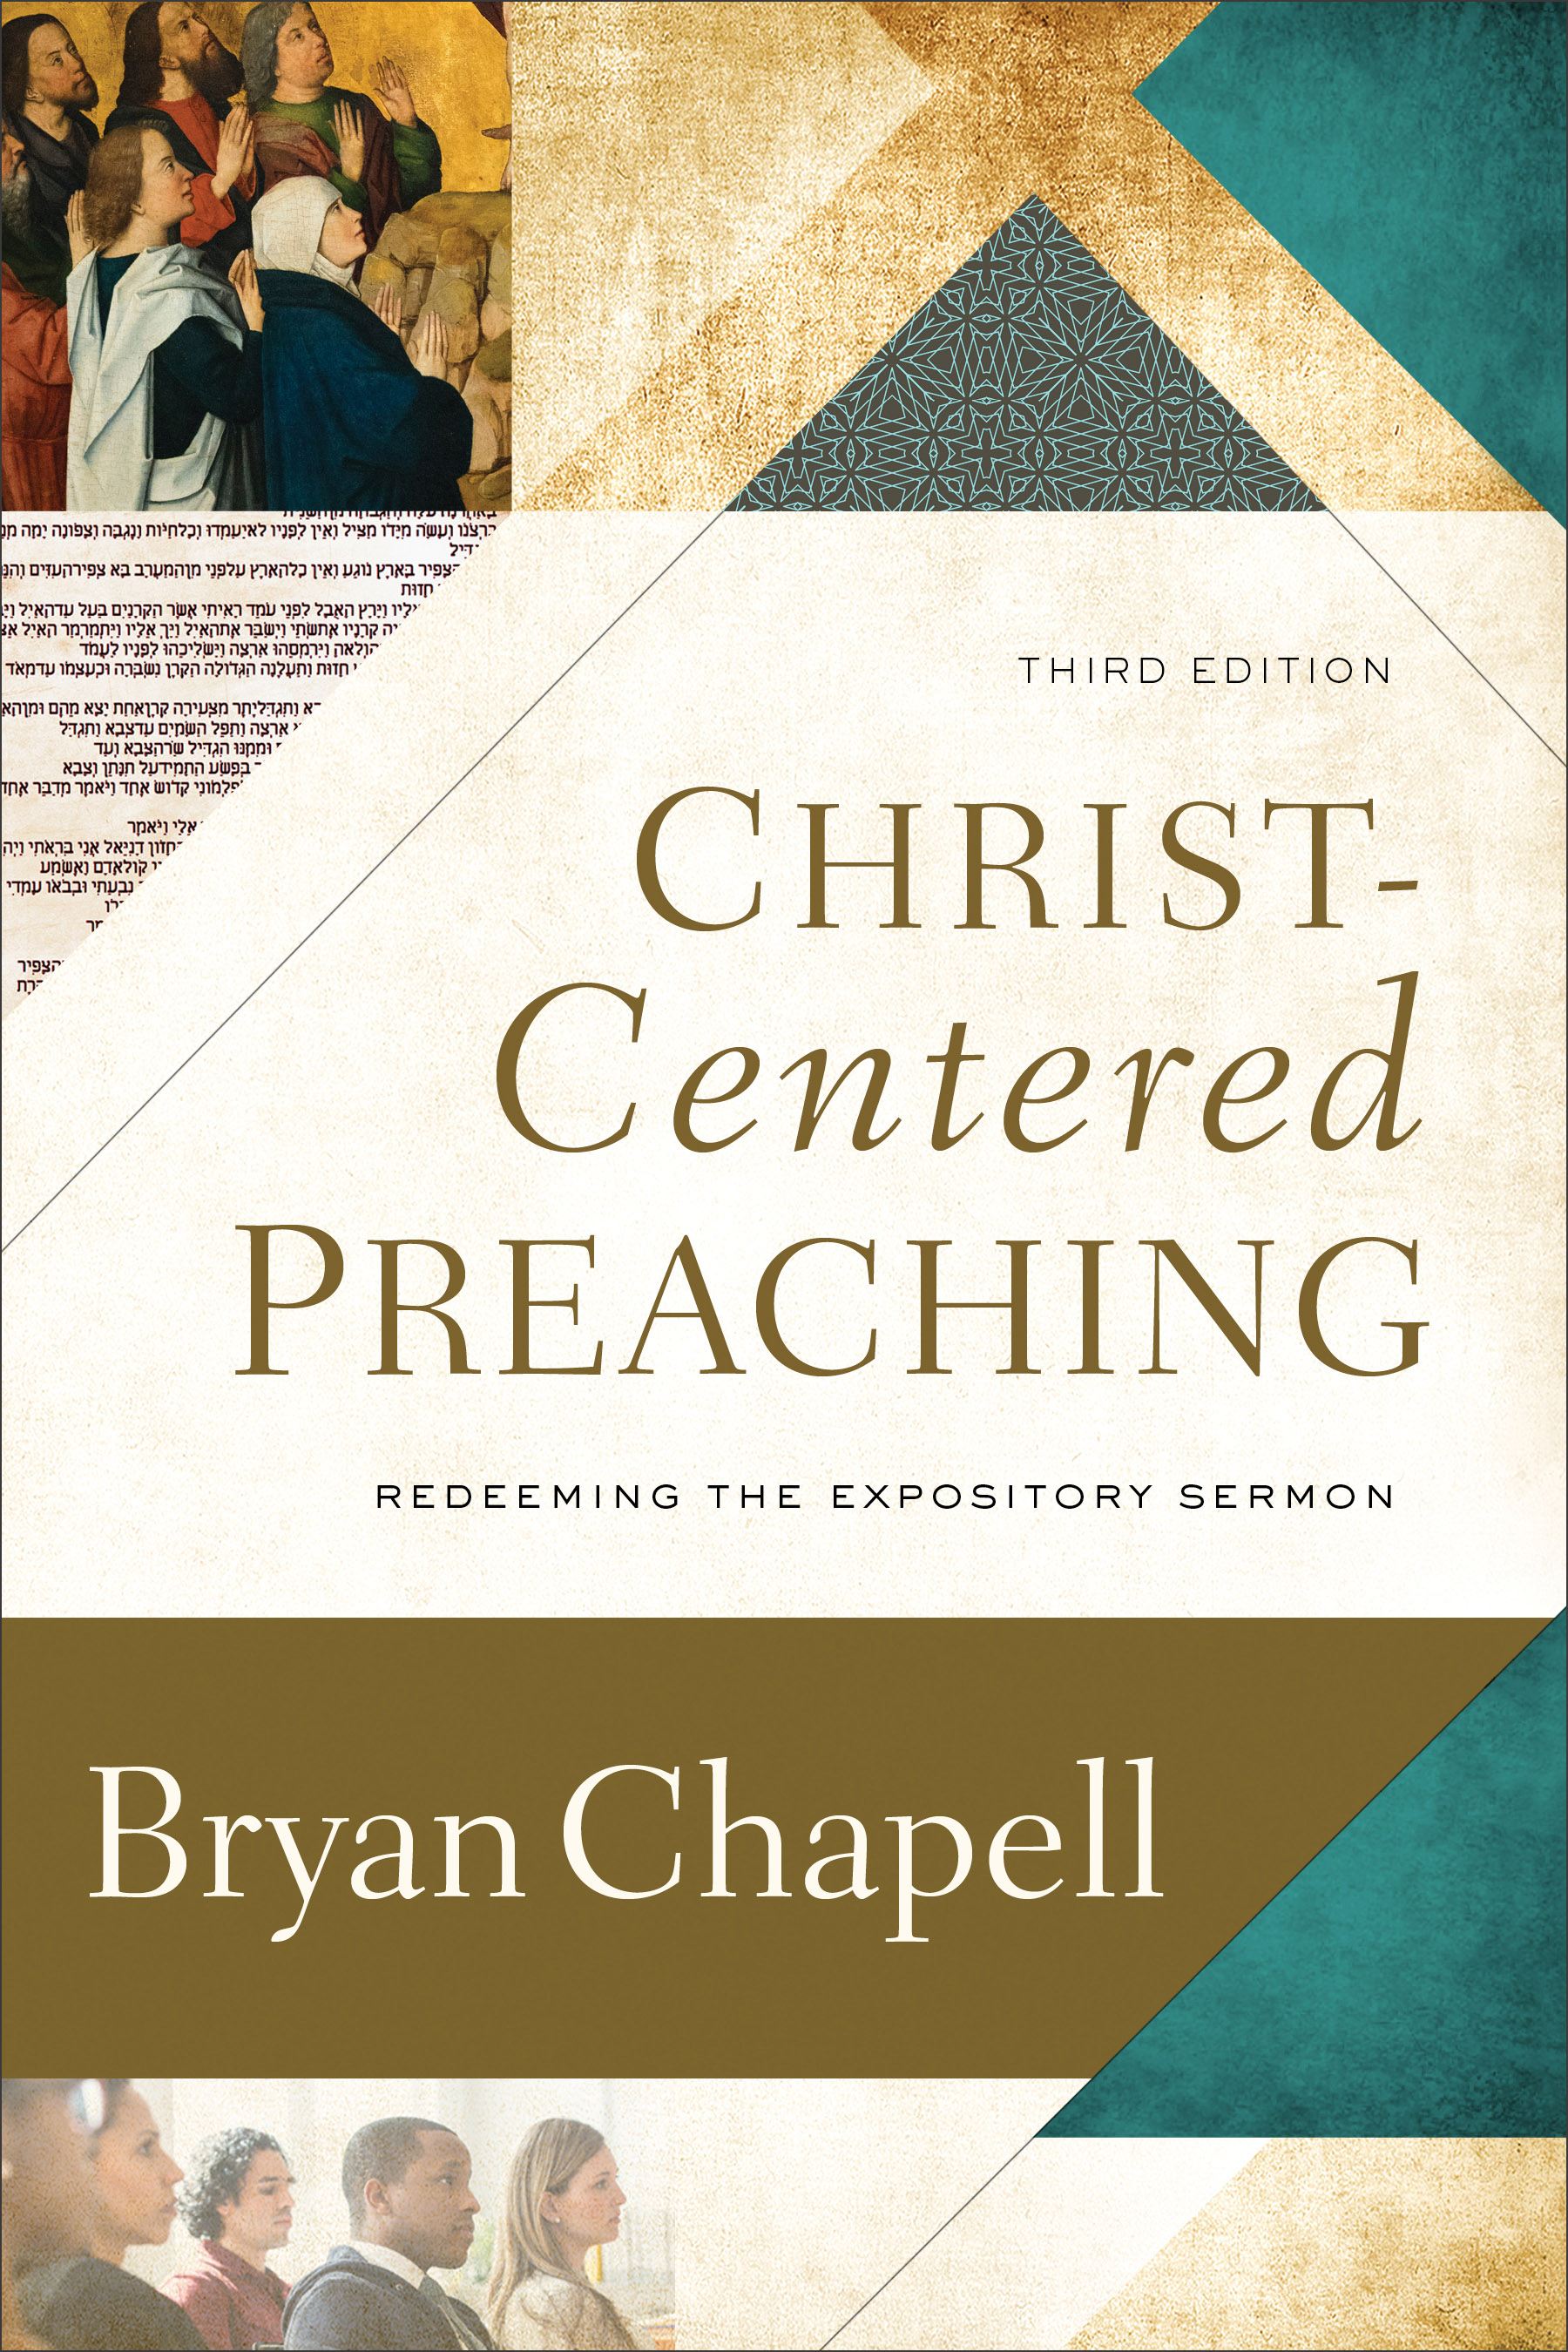 Christ-Centered Preaching, 3rd Edition | Baker Publishing Group